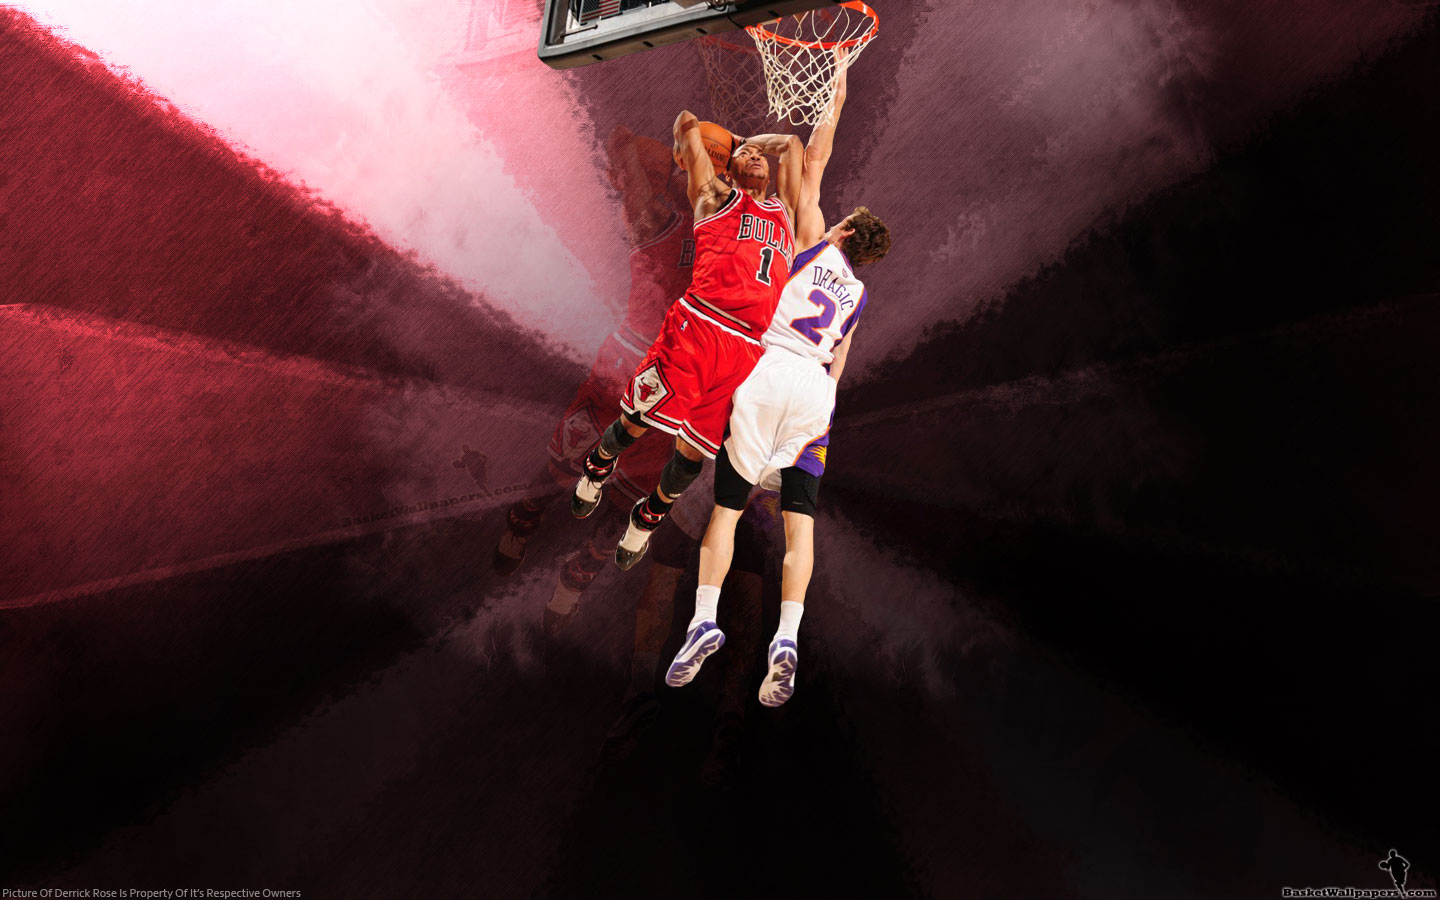 http://1.bp.blogspot.com/-8NOW8RbP3Uk/TdkhKz3-bXI/AAAAAAAAD2s/oxPC419SgCU/s1600/Derrick-Rose-Over-Goran-Dragic-Widescreen-Wallpaper.jpg